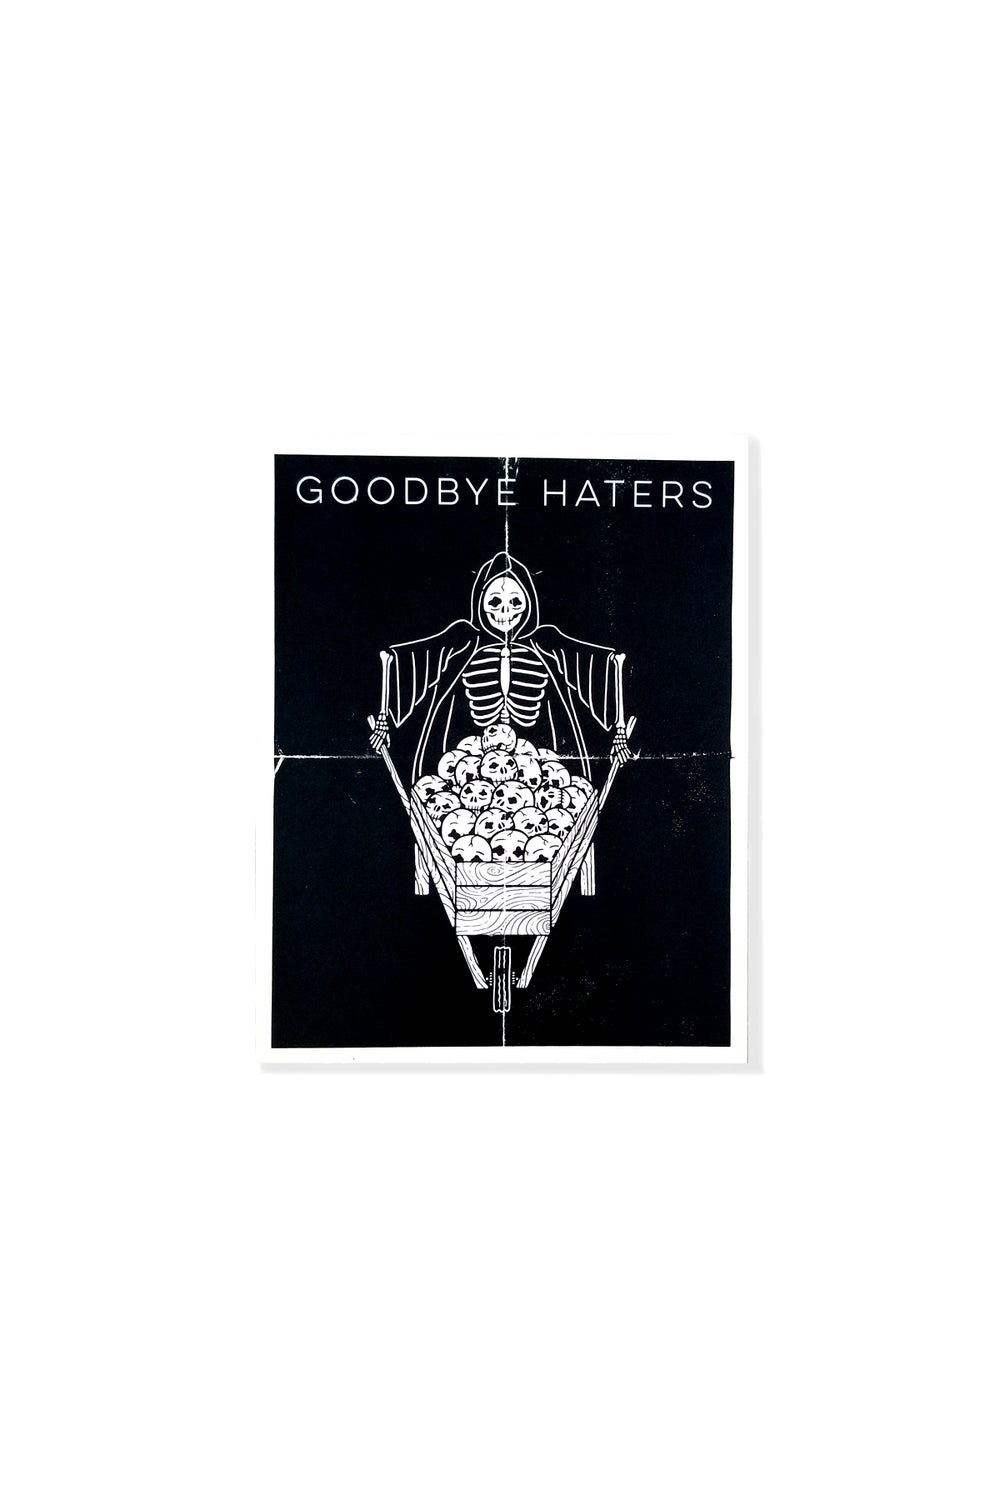 Image of GOODBYE HATERS